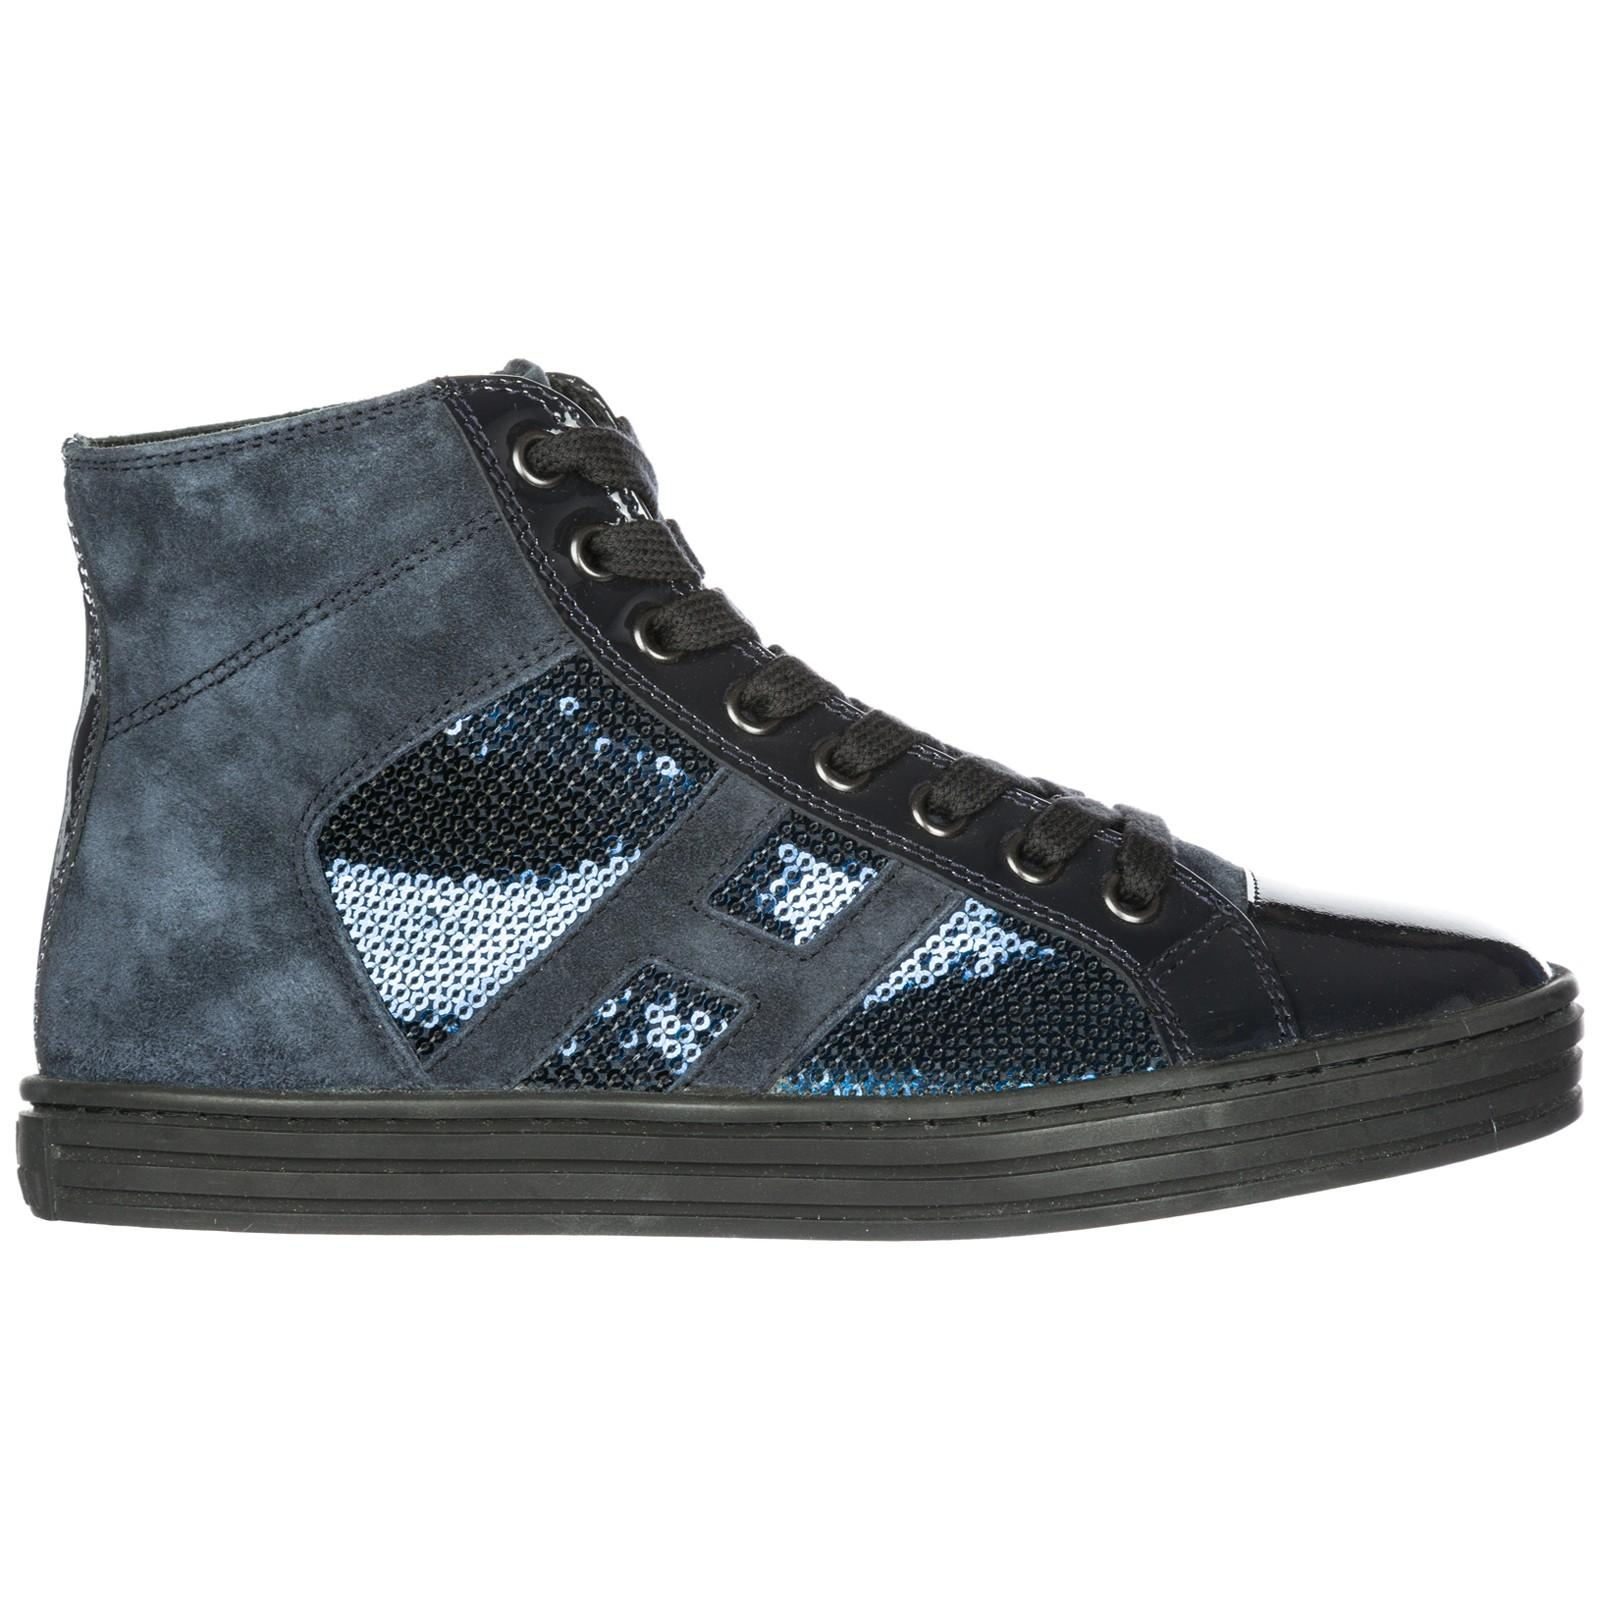 529e66b38 Hogan Rebel Women's Shoes High Top Leather Trainers Sneakers R141 In Blue